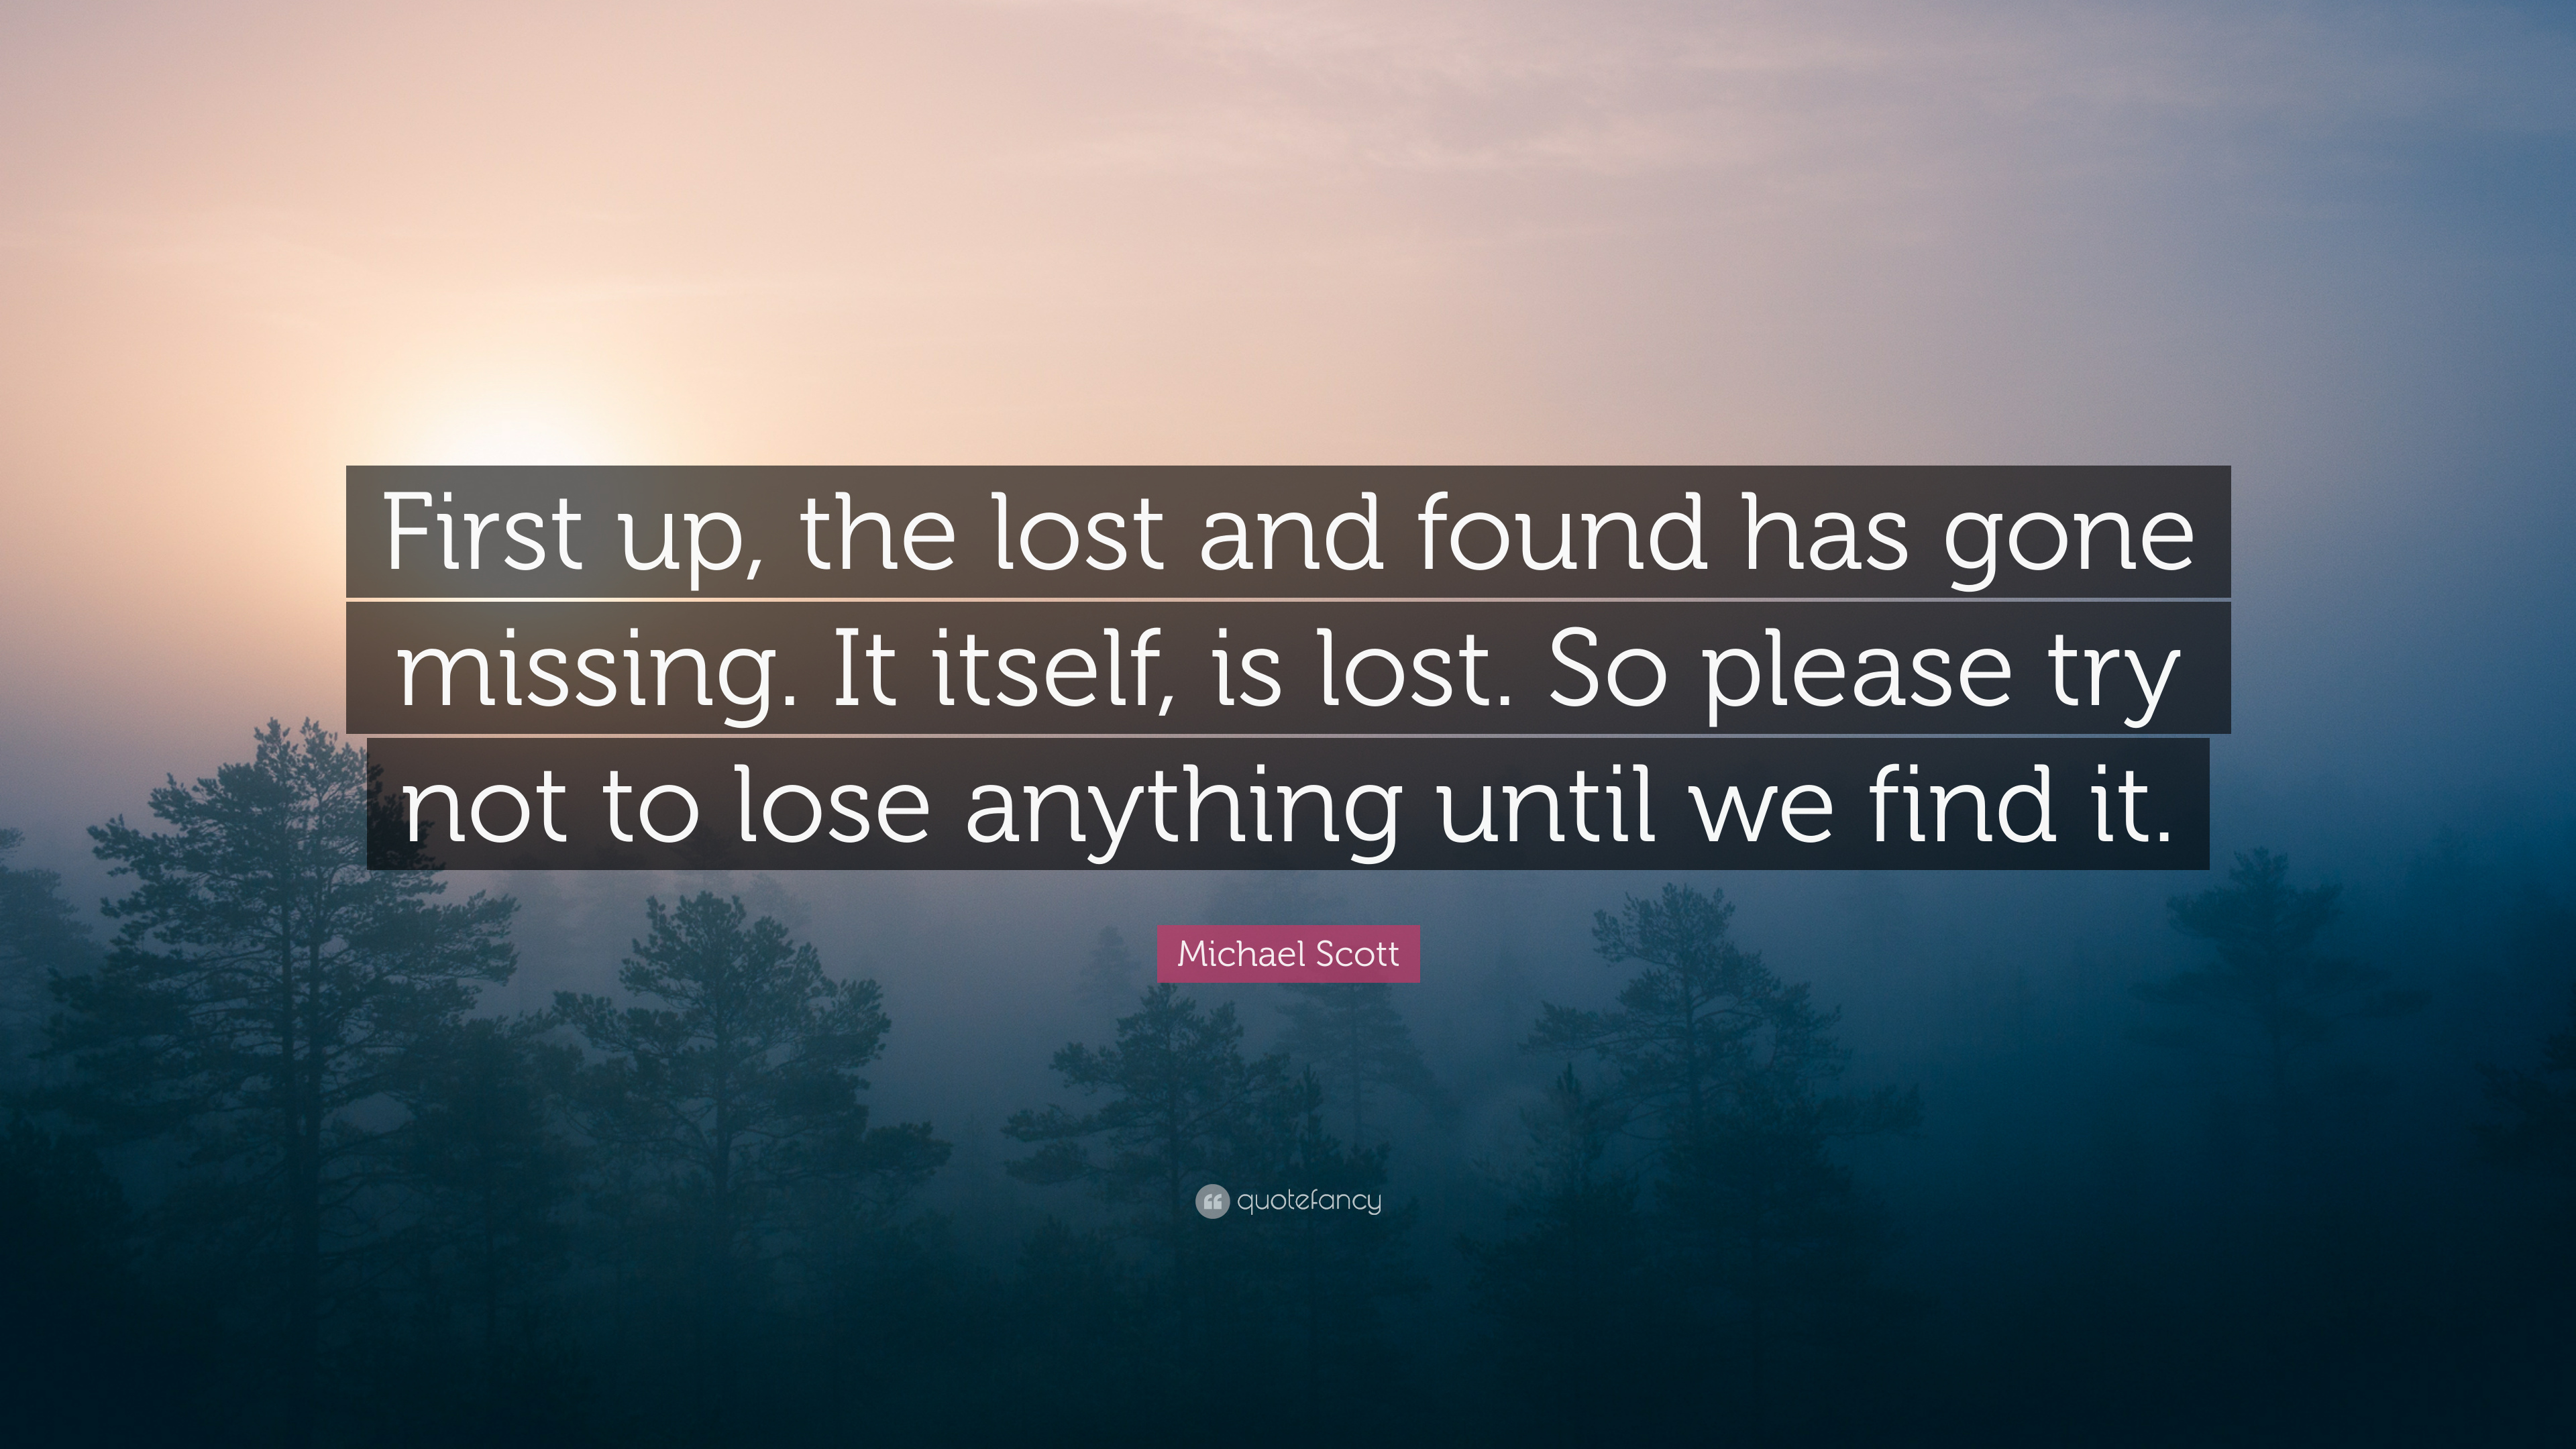 michael scott quote first up the lost and found has gone missing